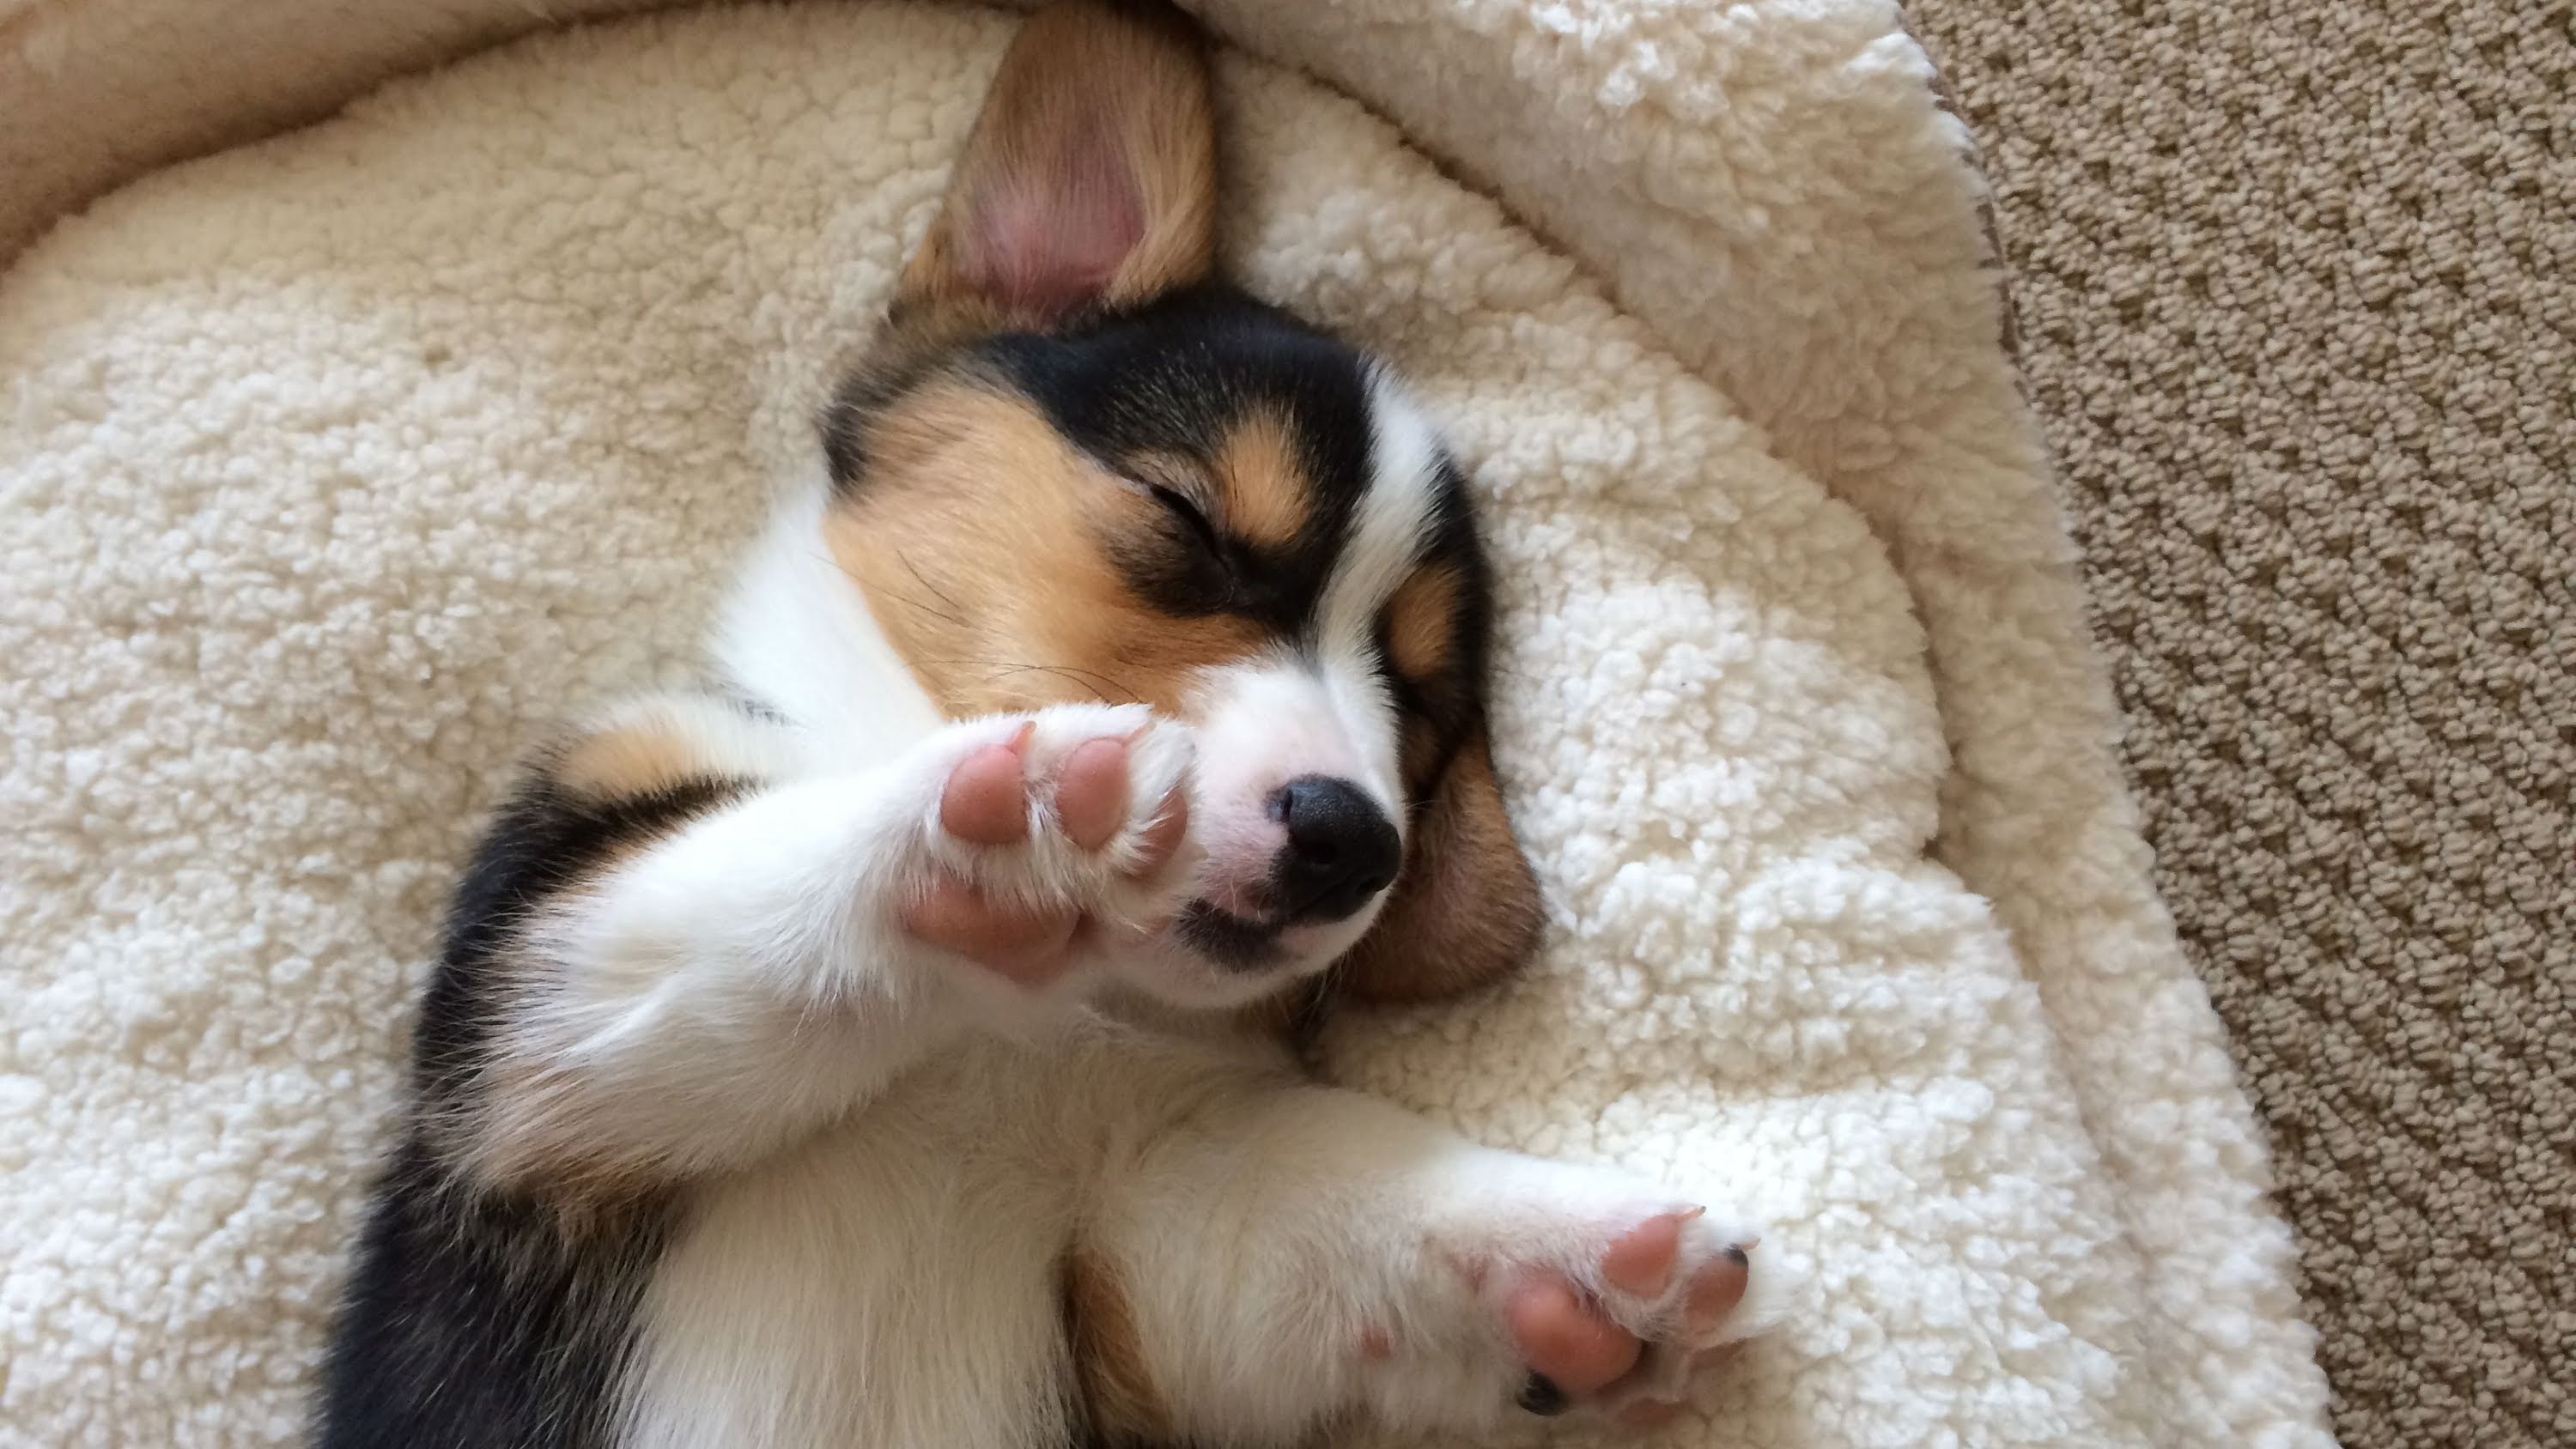 CUTE SLEEPING CORGI PUPPY COMPILATION - Grows Up! - YouTube